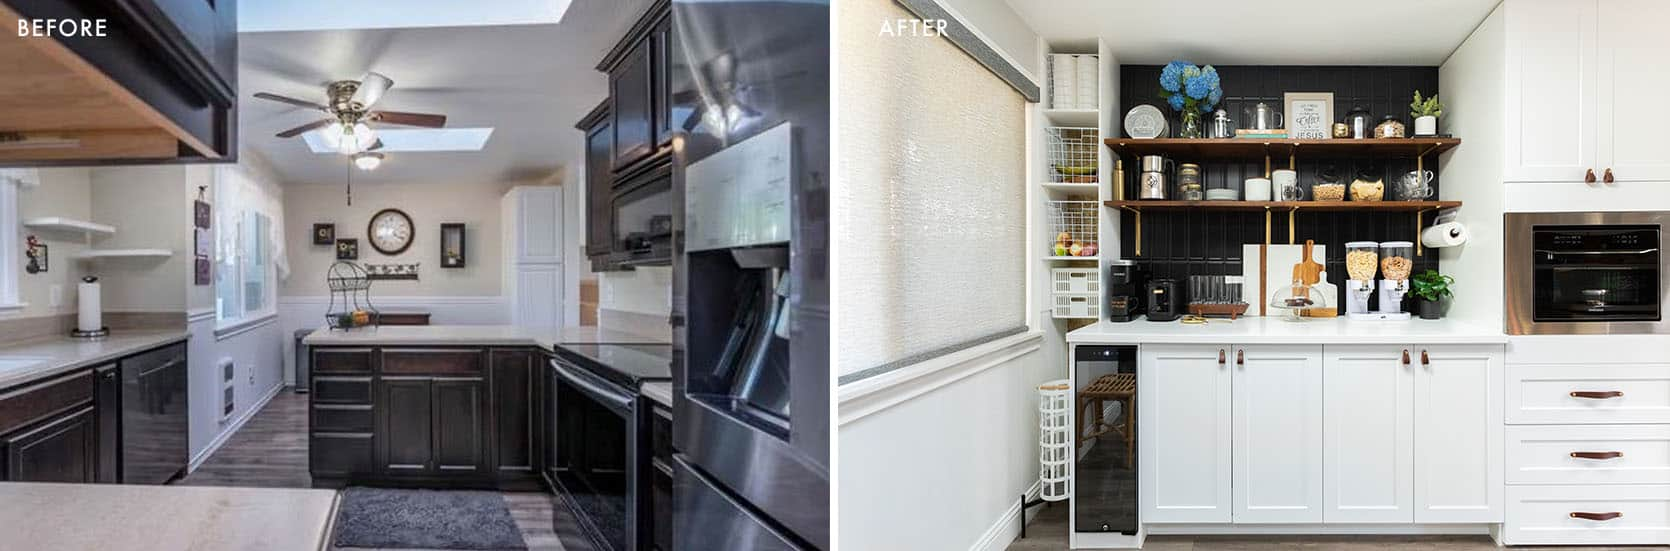 Albies Kitchen Before and After3